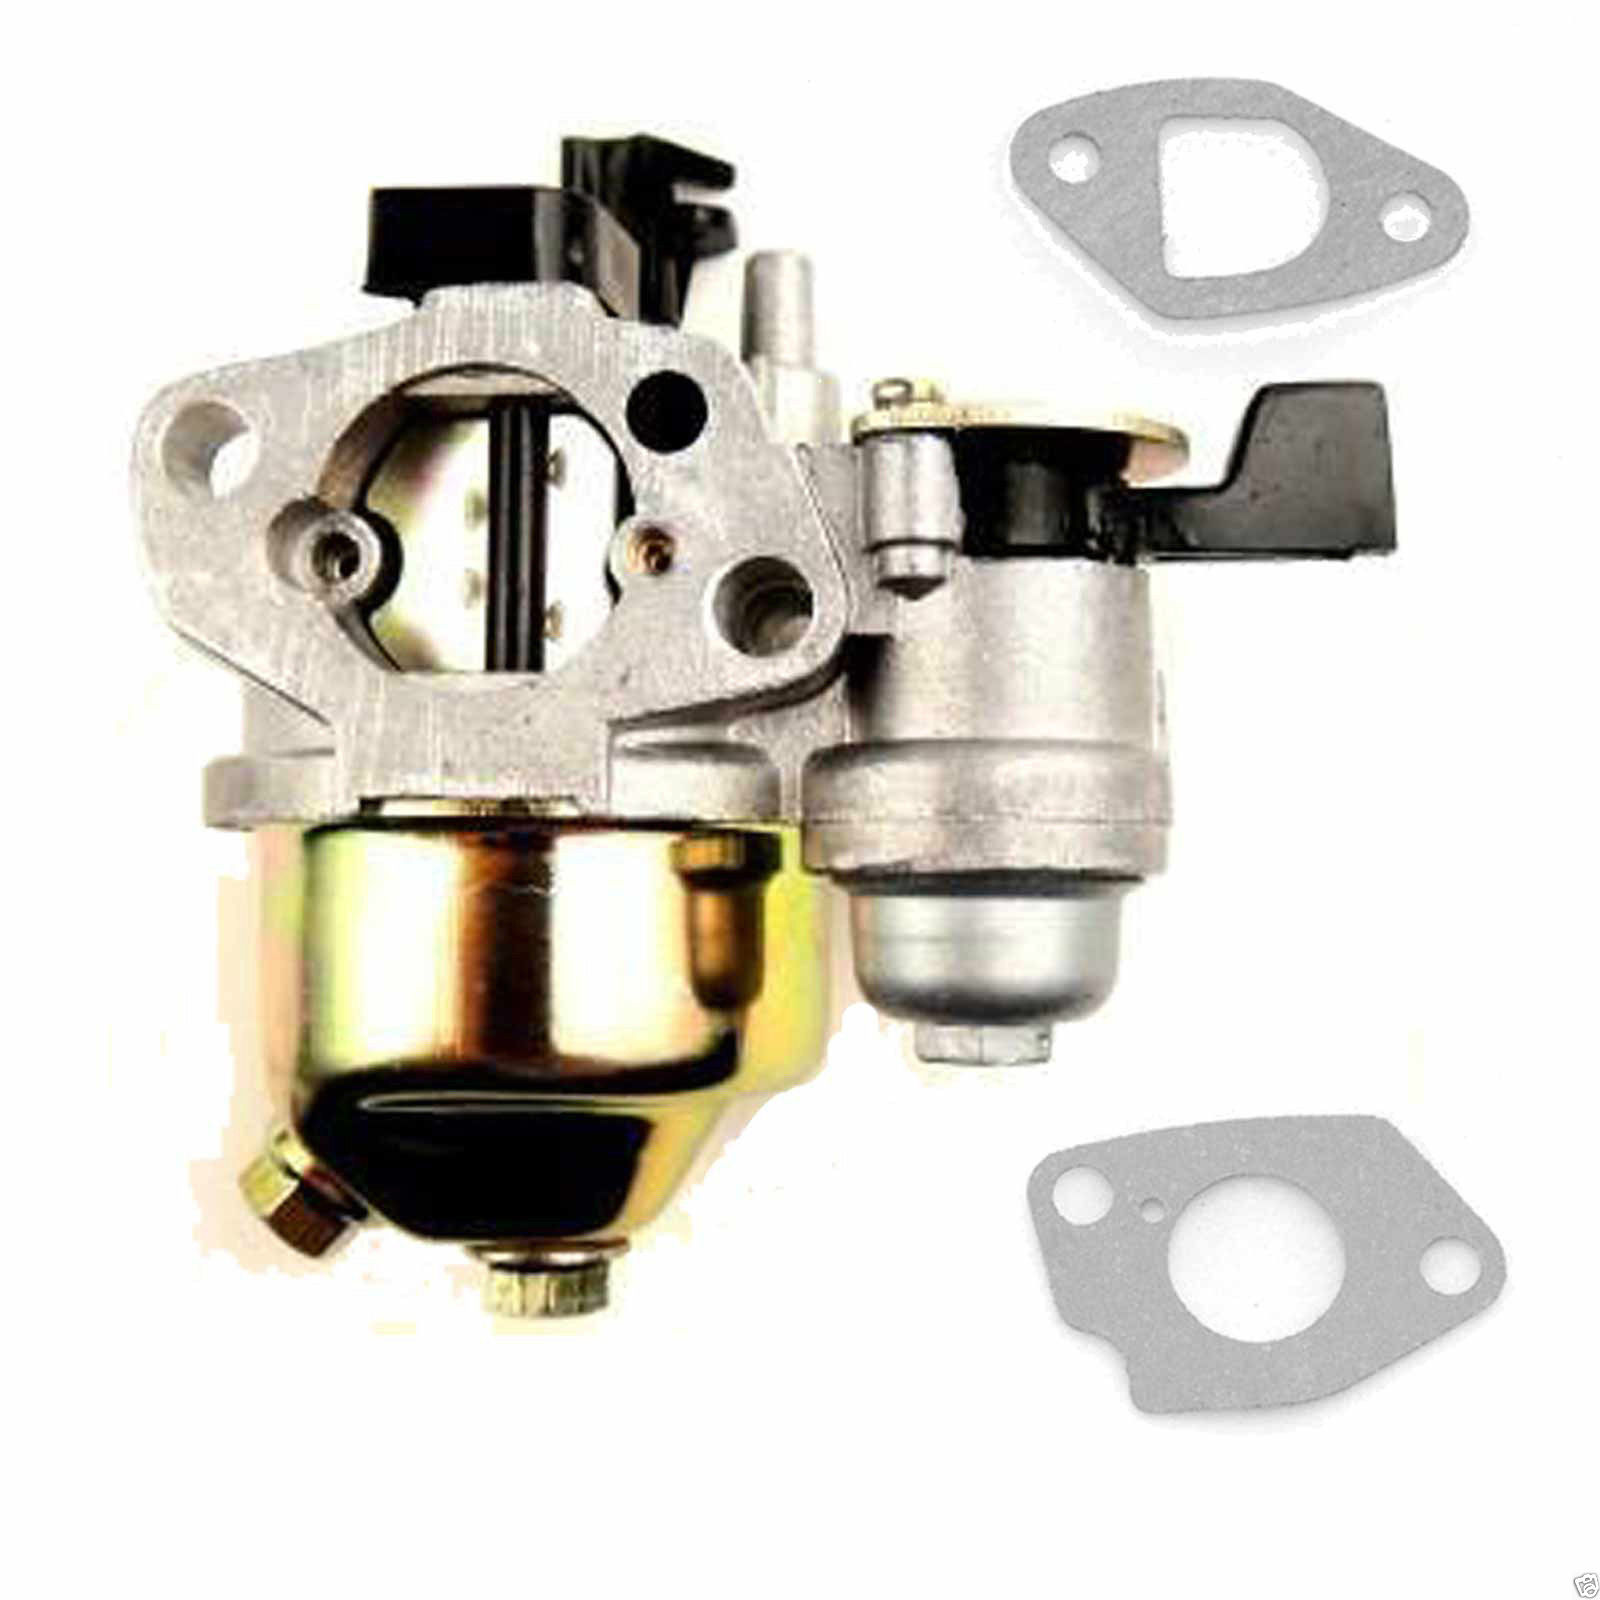 CARBURETOR AND GASKETS FITS HONDA GX200 6.5HP ENGINES part# PF20